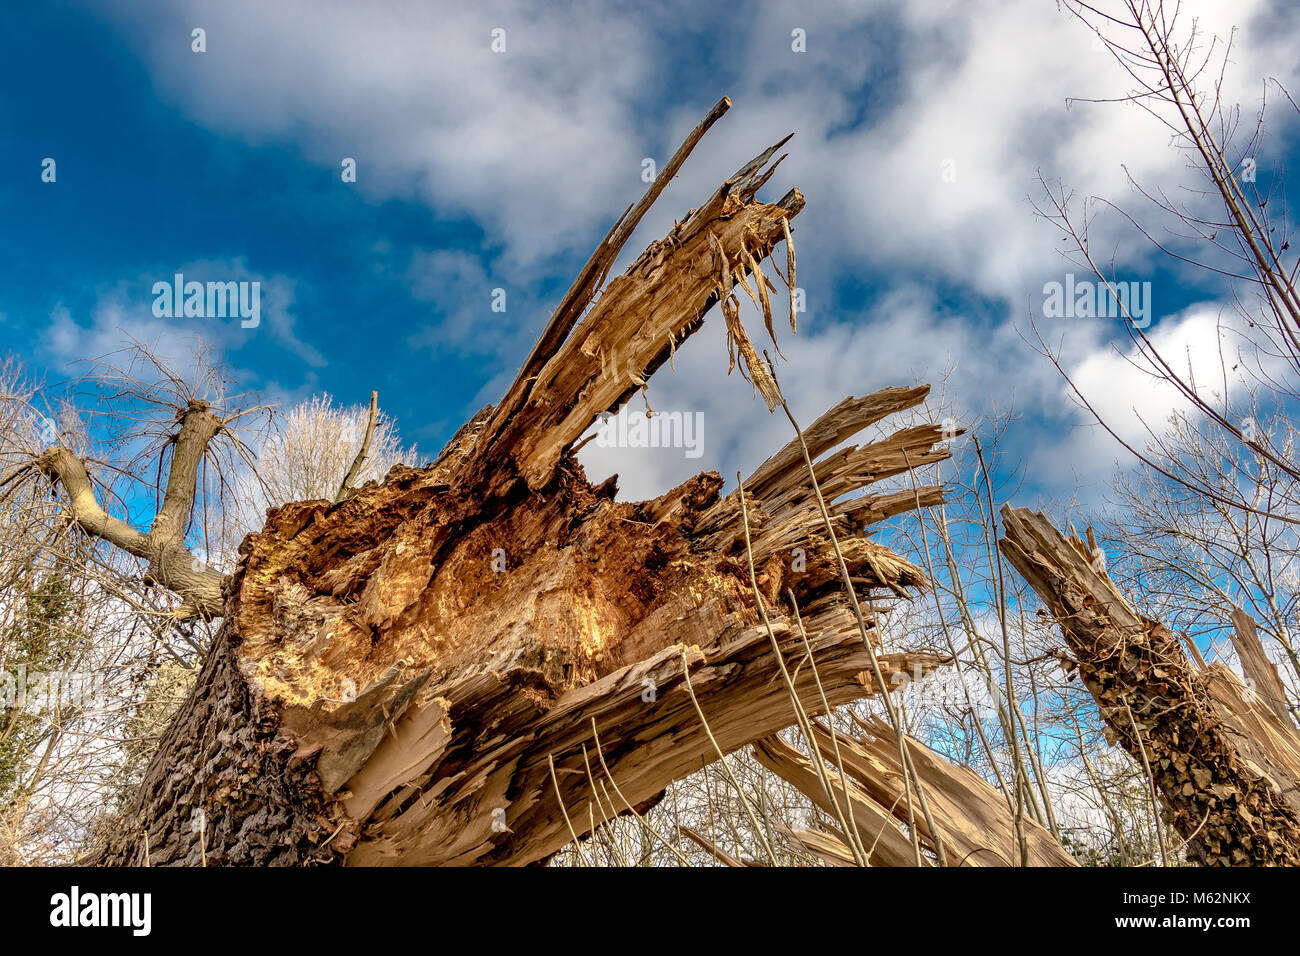 Close up of a decaying ,fallen Ash tree , showing the jagged, broken shards of wood - Stock Image